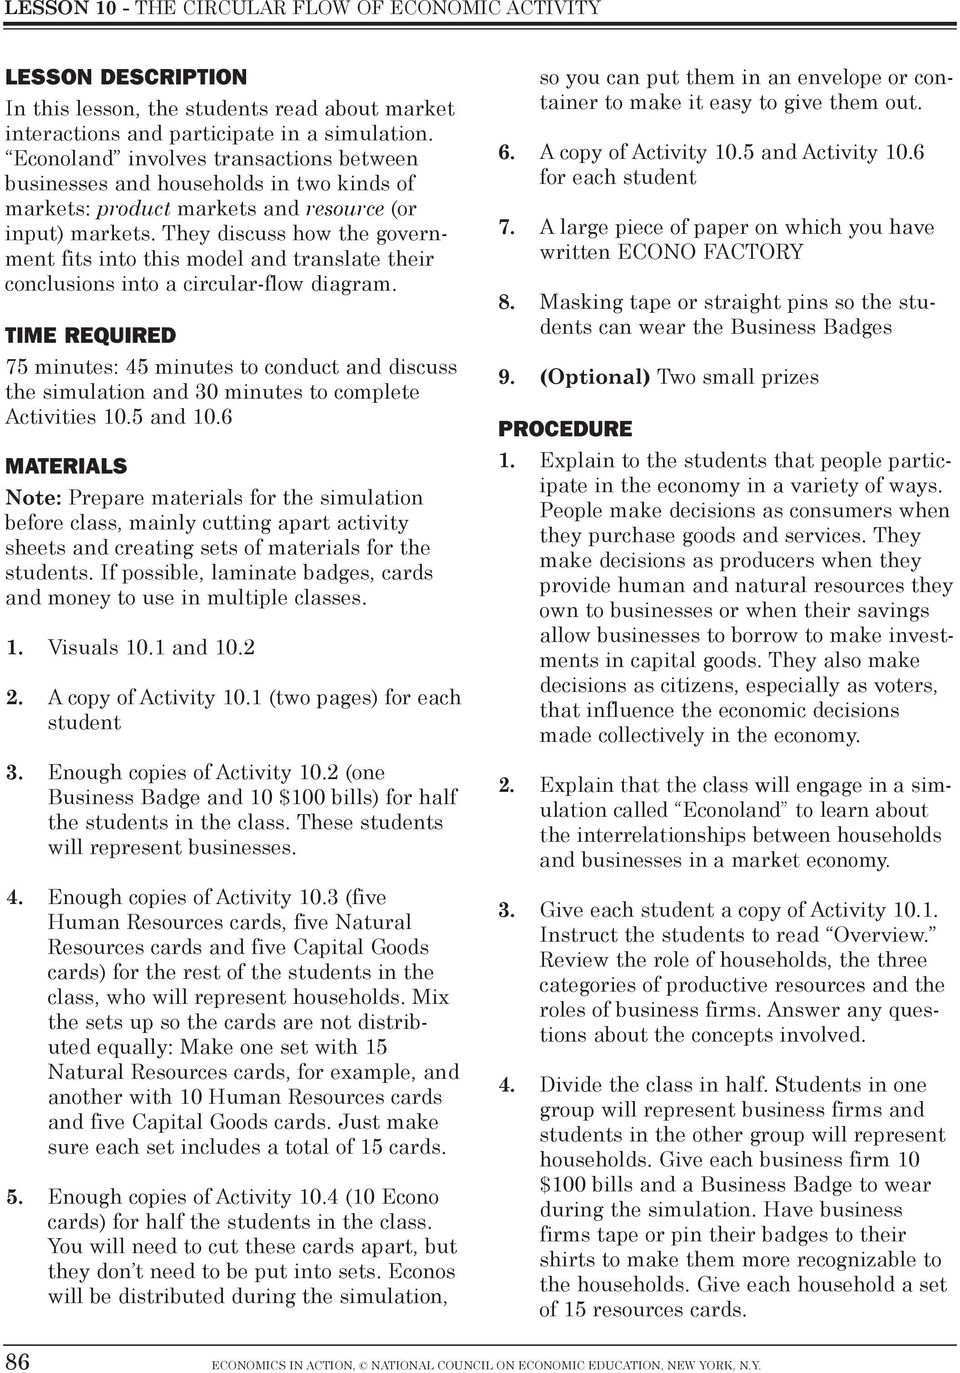 Lesson 10 the circular flow of economic activity pdf they discuss how the government fits into this model and translate their conclusions into a circular pooptronica